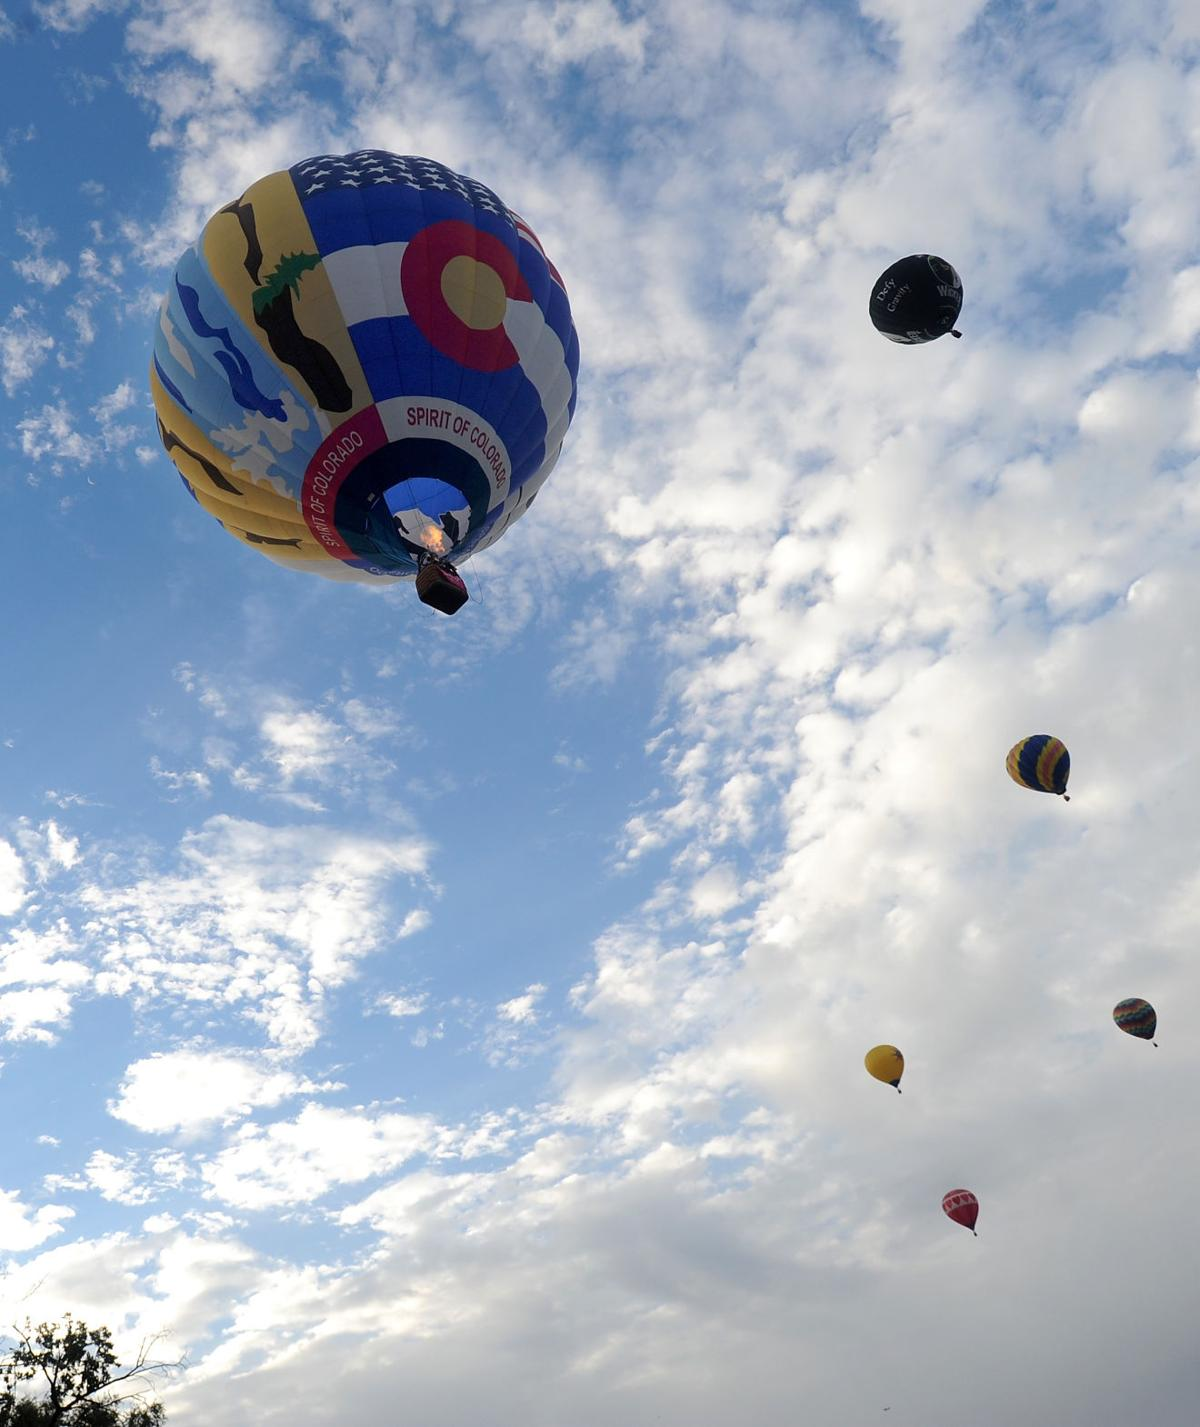 City politics may push Balloon Classic out of Colorado Springs